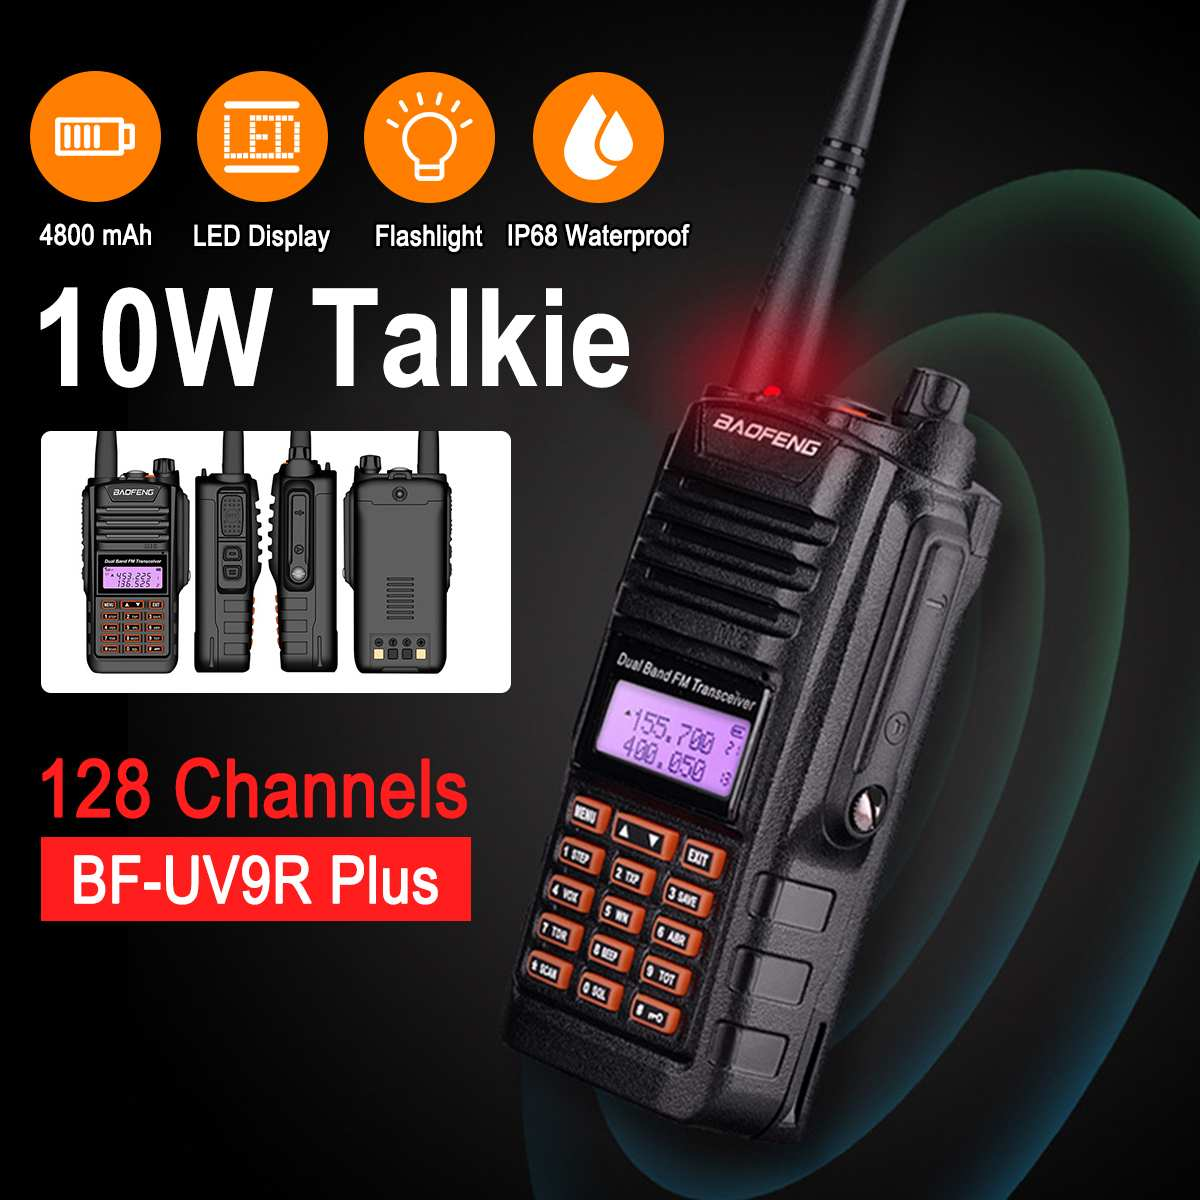 Baofeng UV-9R Plus 10W VHF UHF Walkie Talkie Dual Band Handheld Waterproof 10km Two Way Radio Transceiver PMR 9R Transmitter